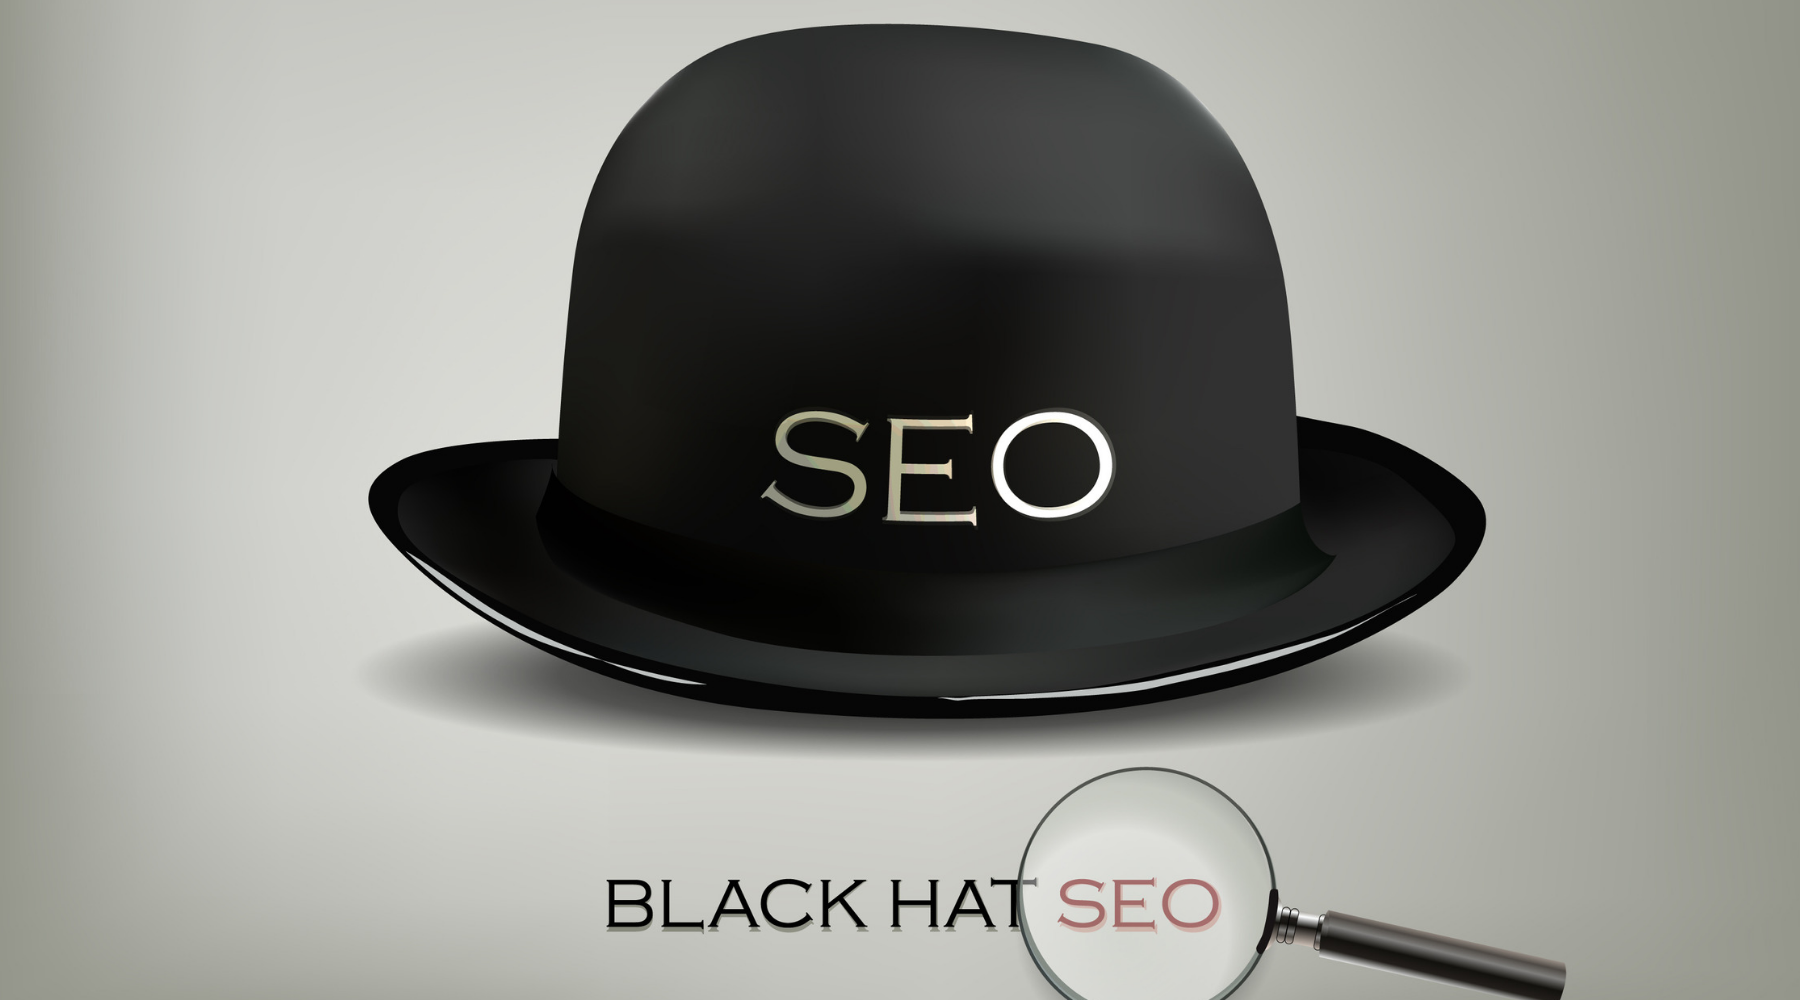 NEW List of Black Hat SEO Blogs and Sites for Guest Blogging wallpaper